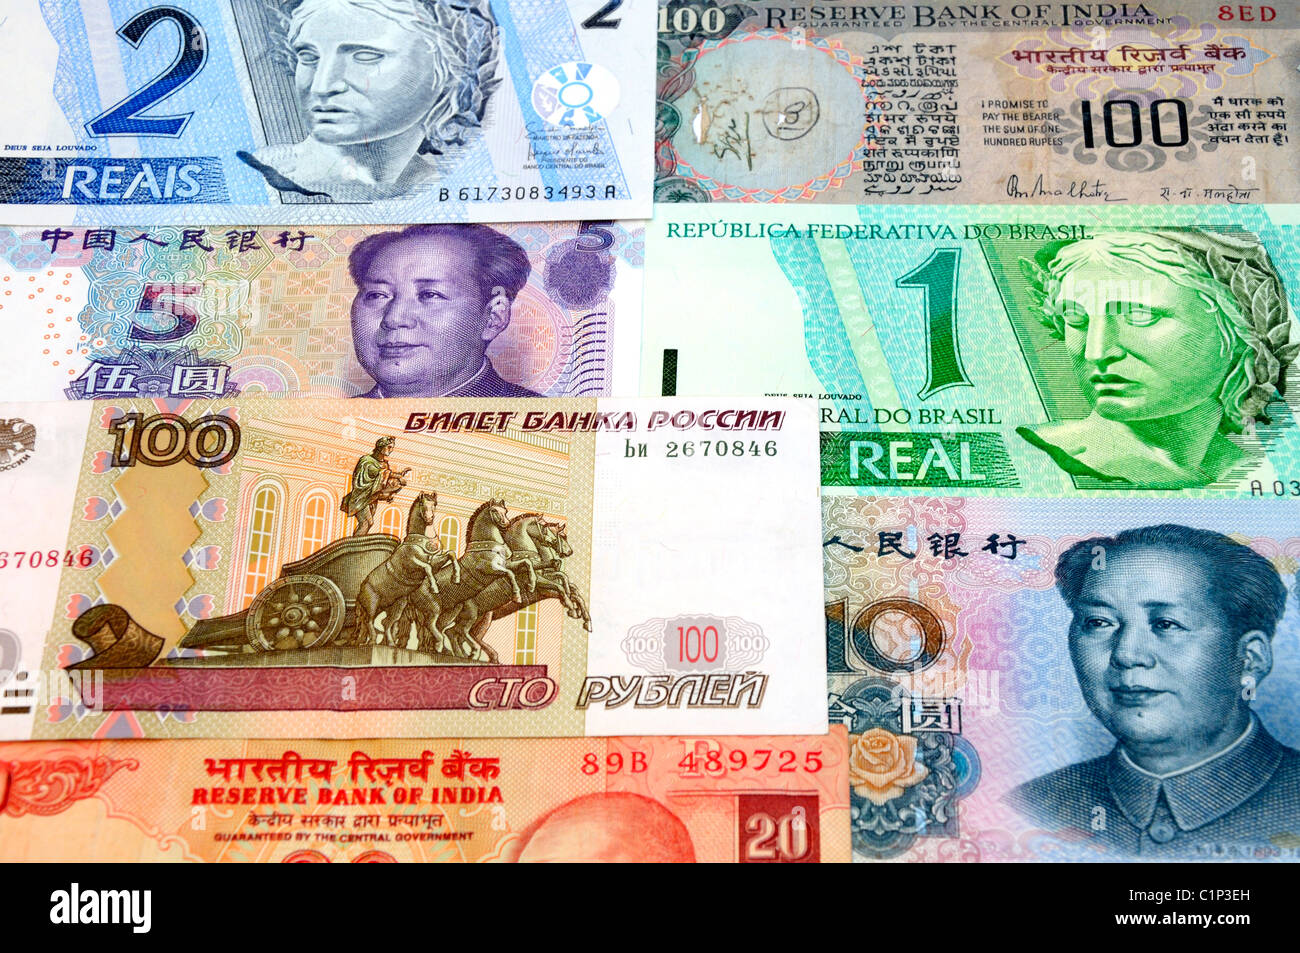 BRIC Currencies. - Stock Image